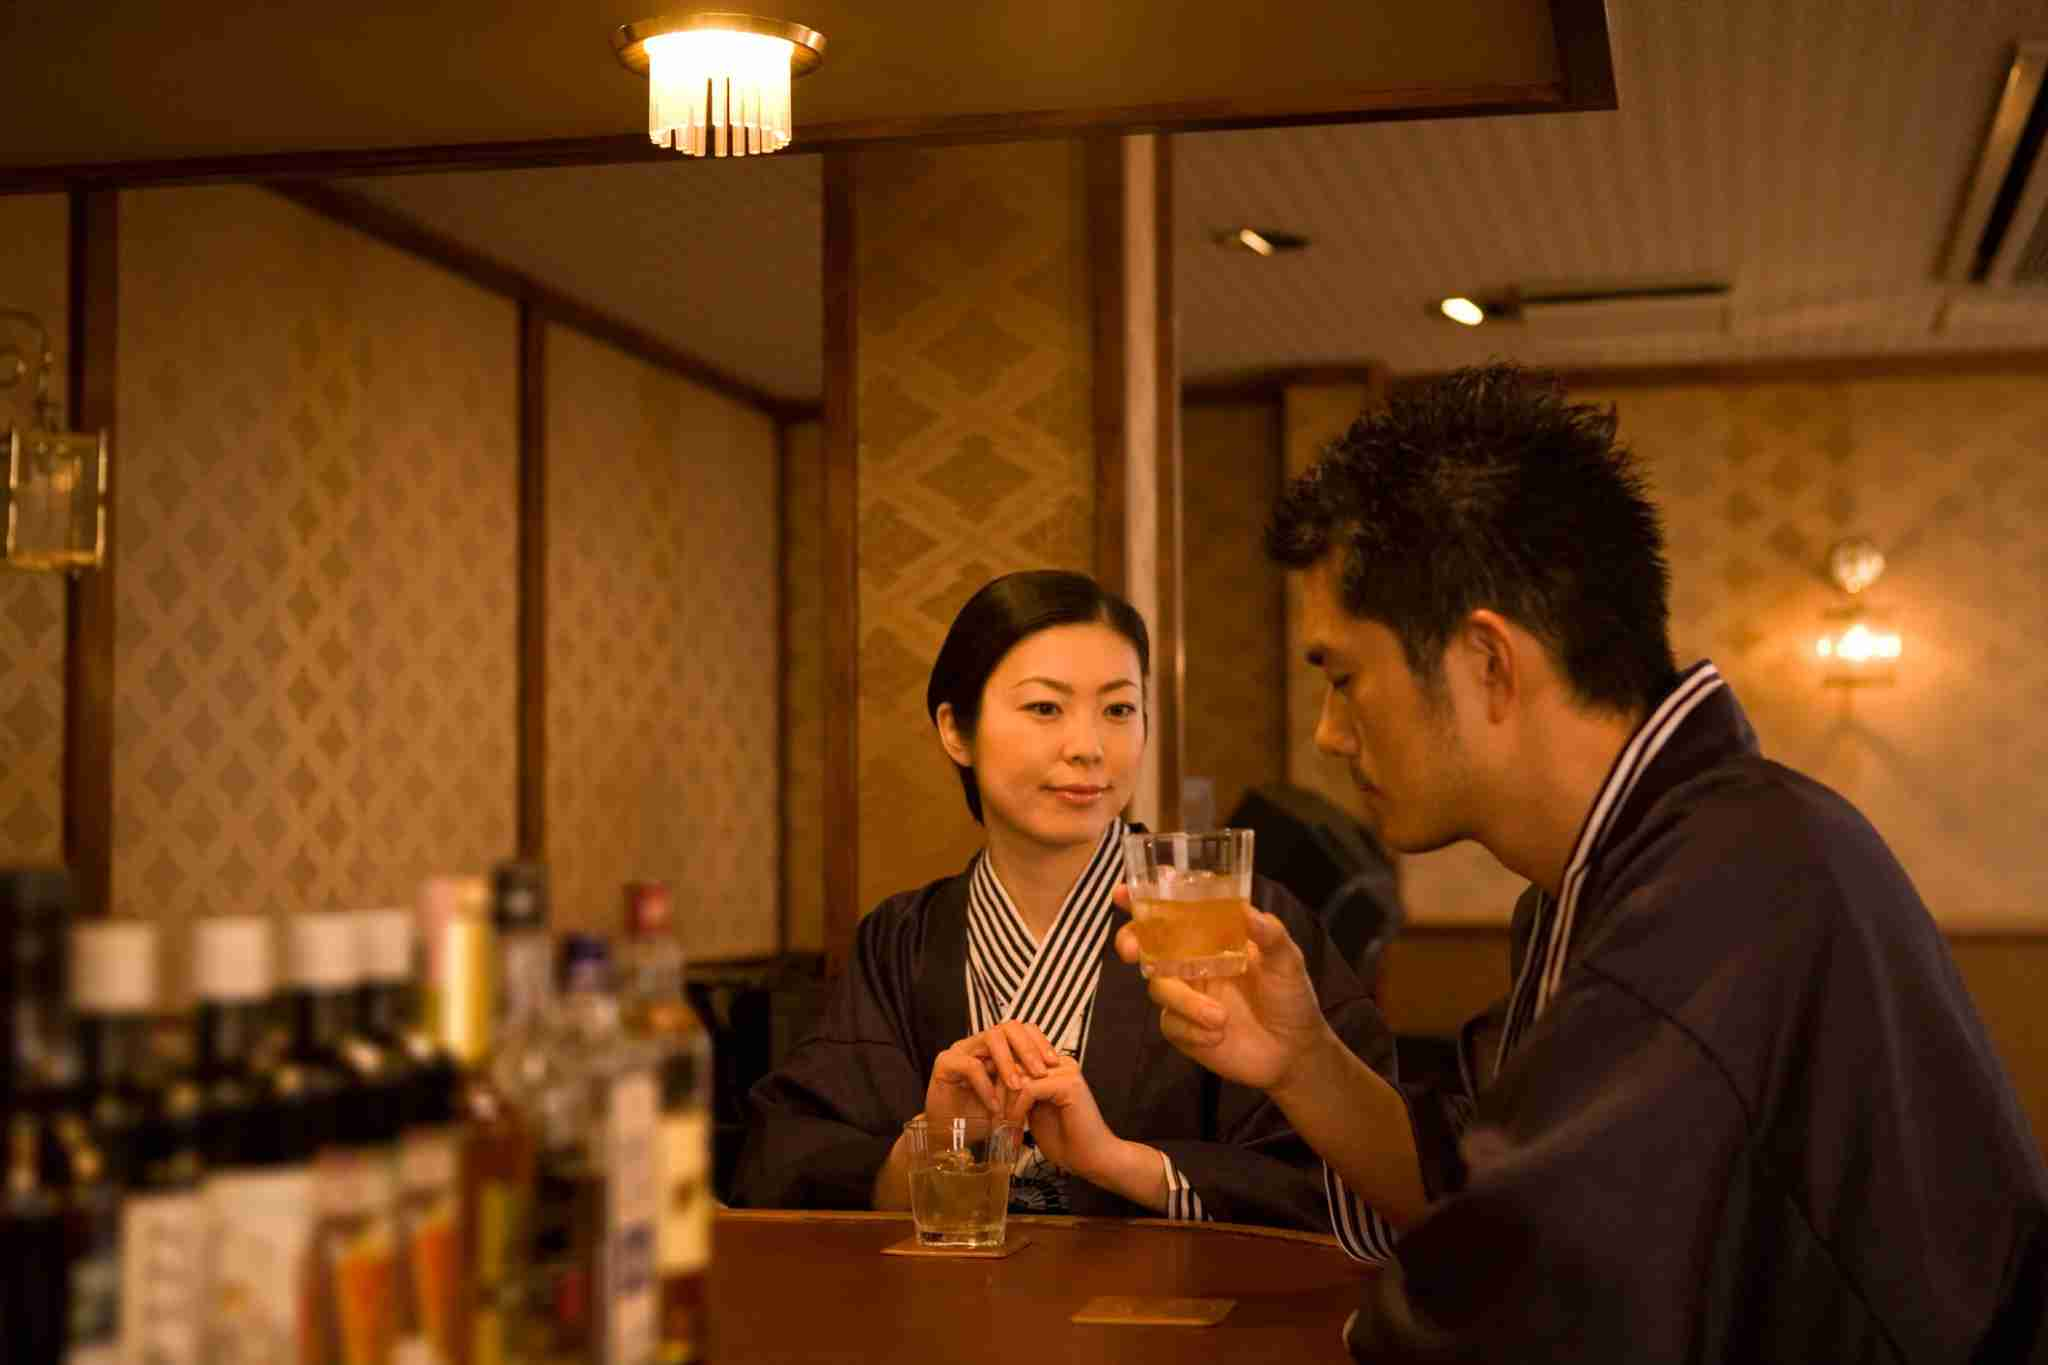 Whisky has become serious business in Japan. Image courtesy of DAJ via Getty Images.